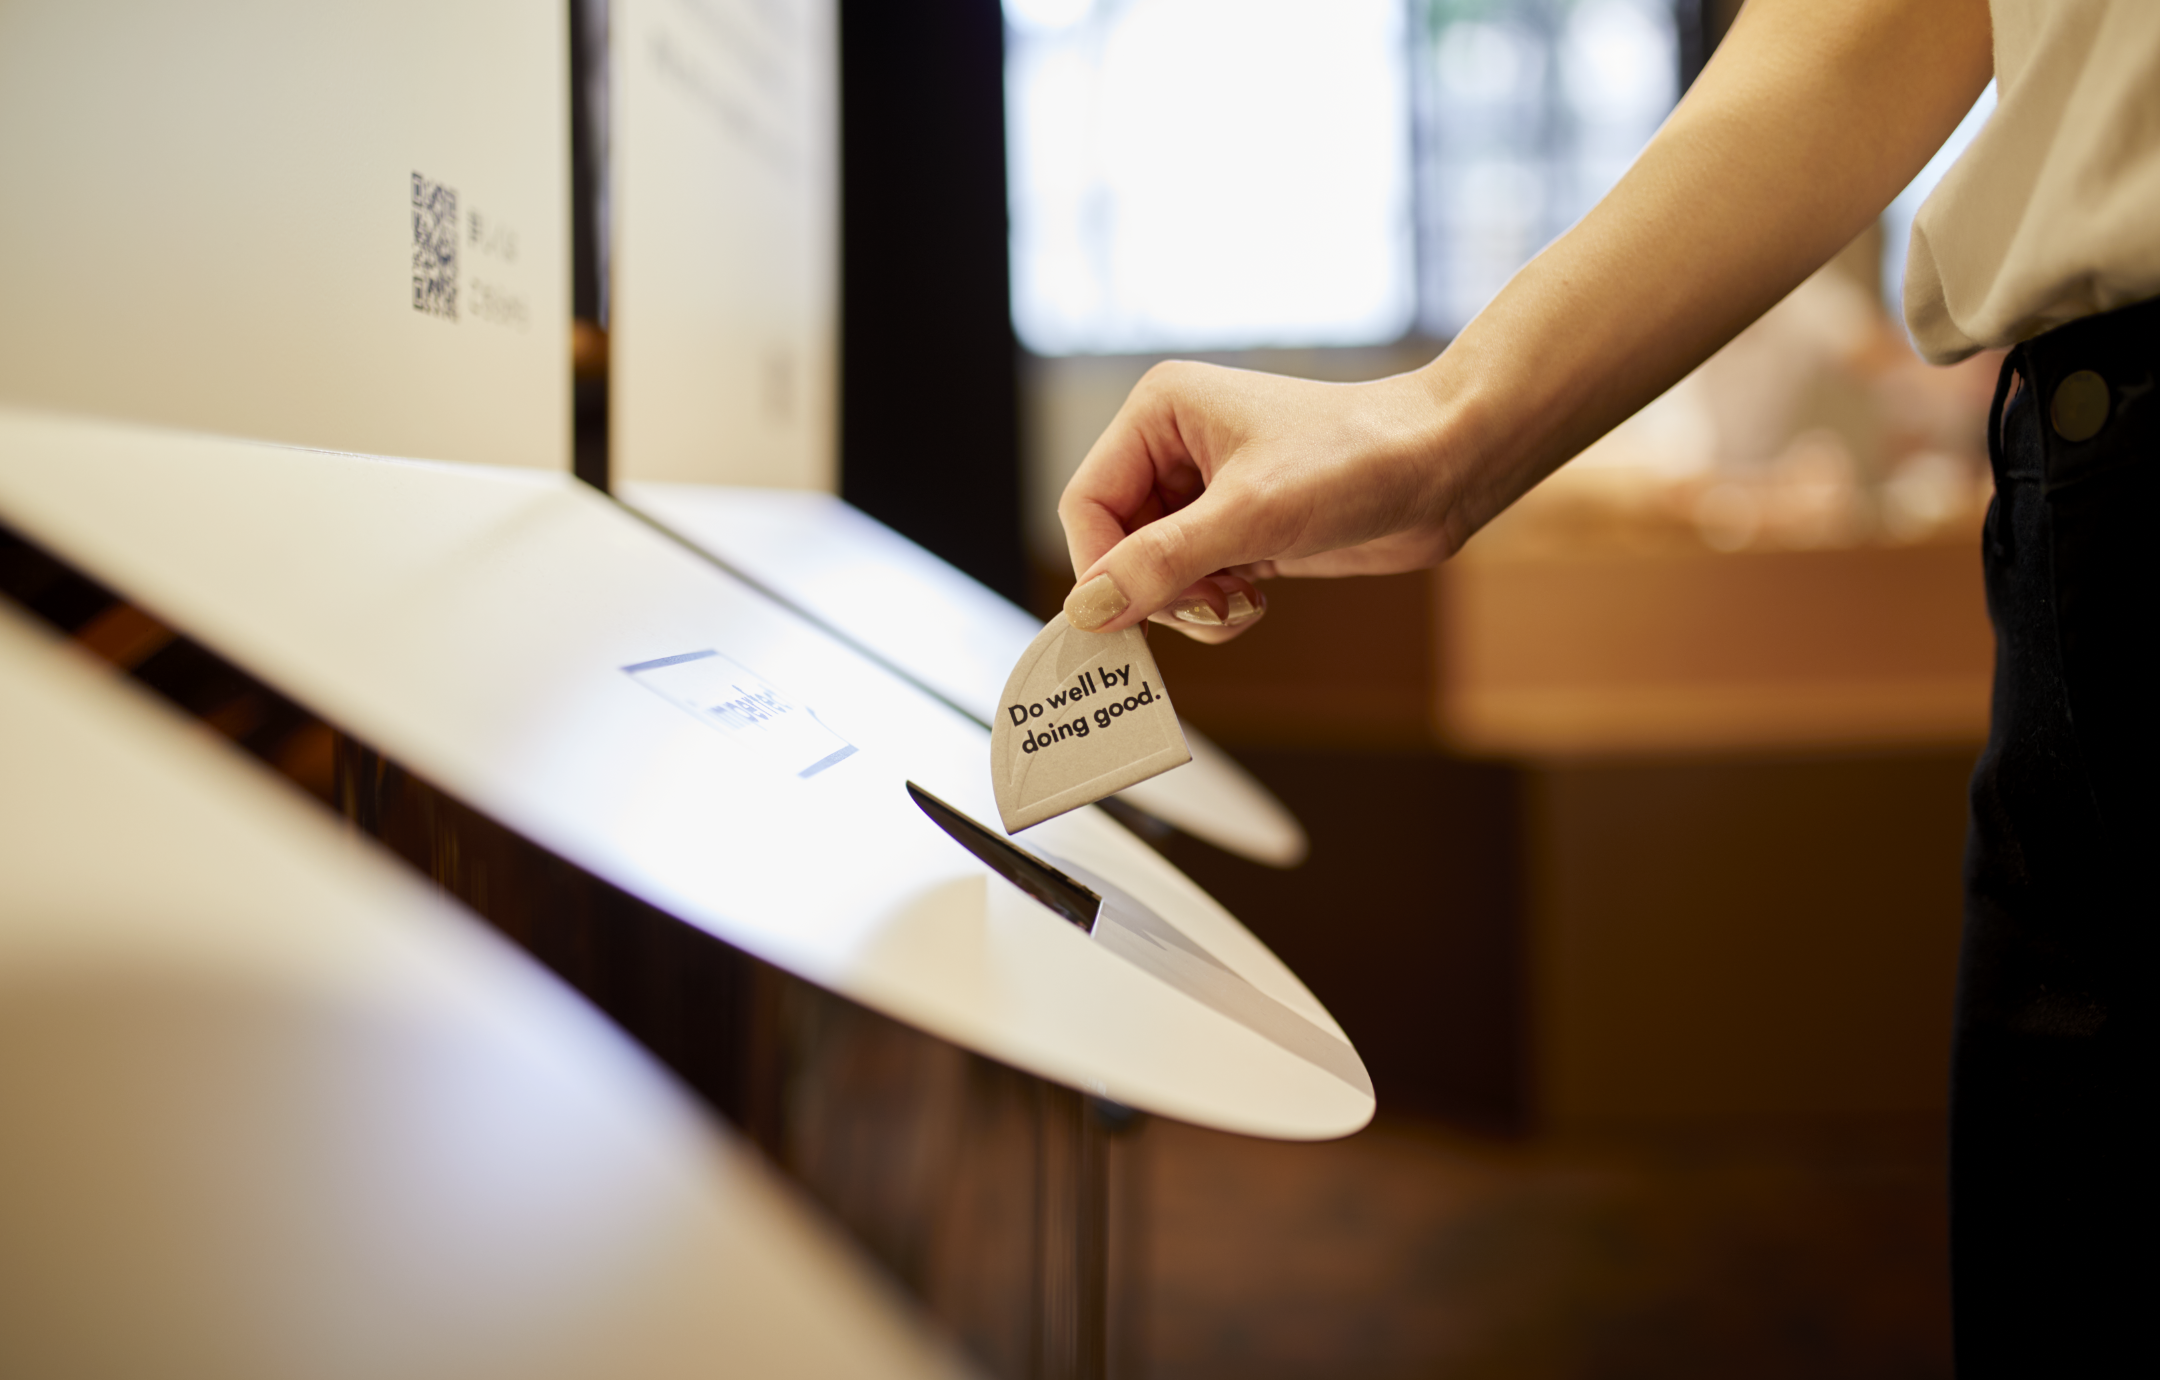 "View of a woman inserting a token into a collection bin at Imperfect, a socially conscious café in Tokyo. The token reads, ""Do well by doing good."""